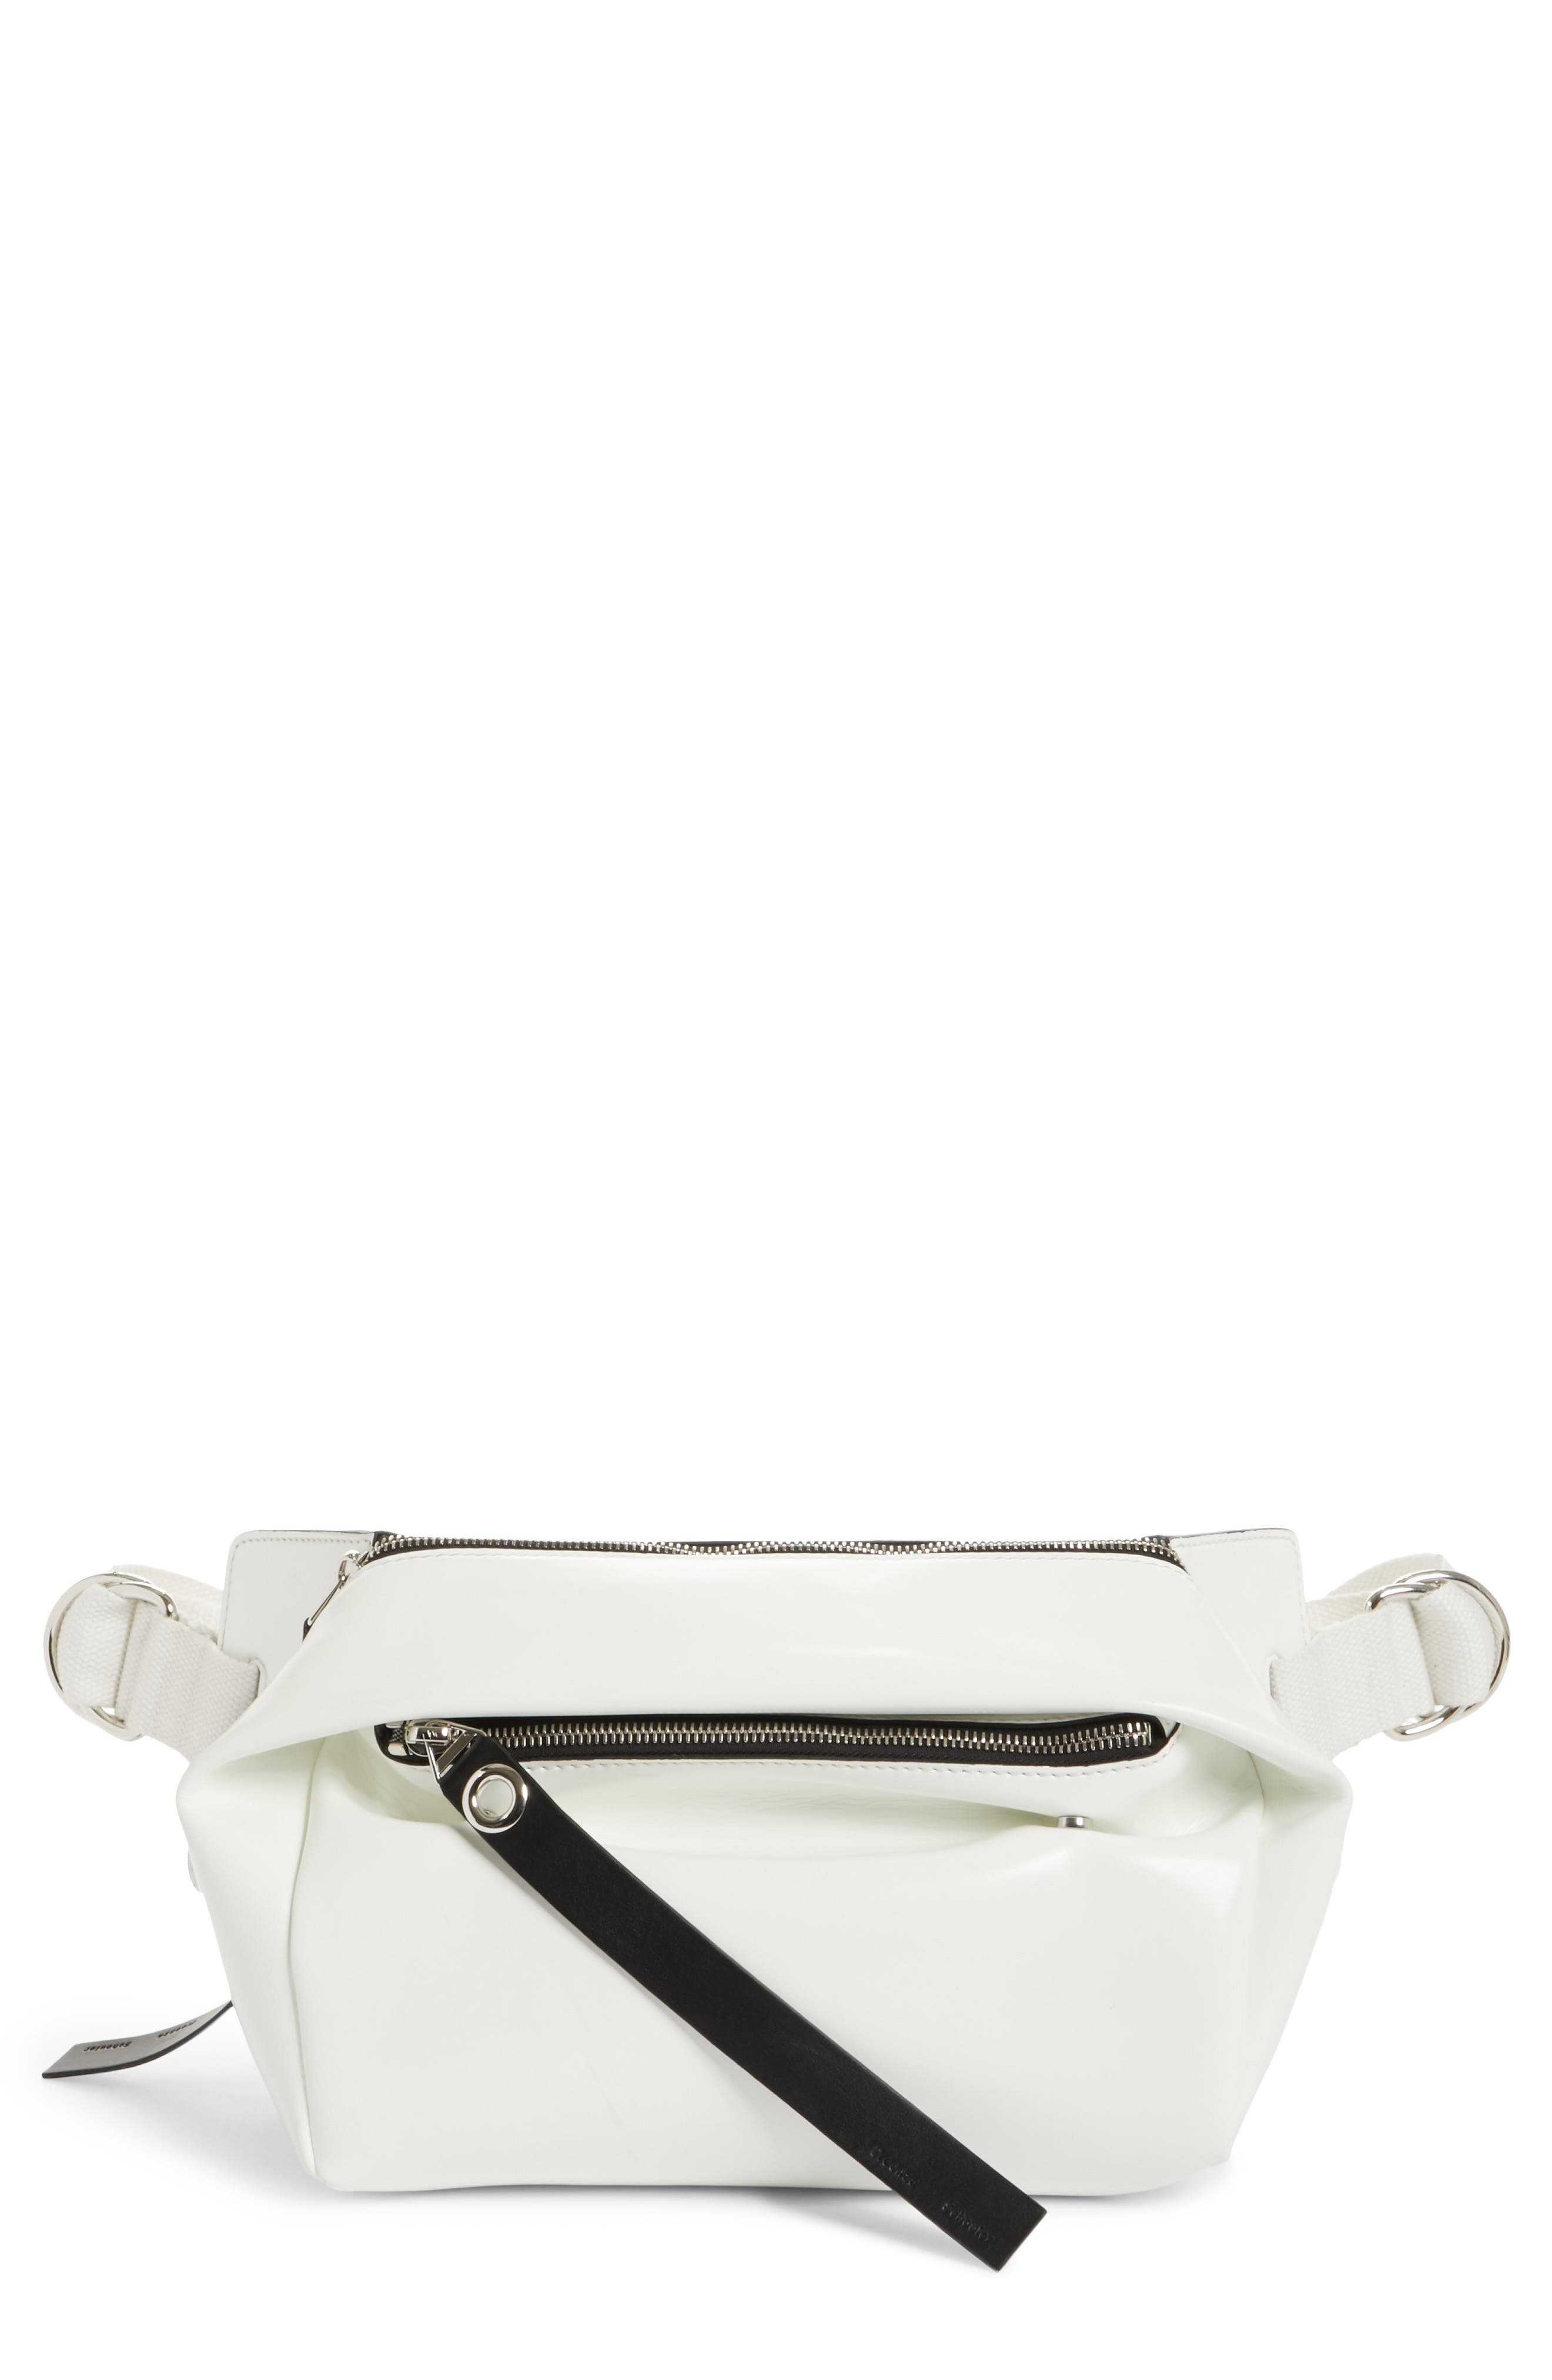 Main Image - Proenza Schouler PSWL Faux Leather Fanny Pack